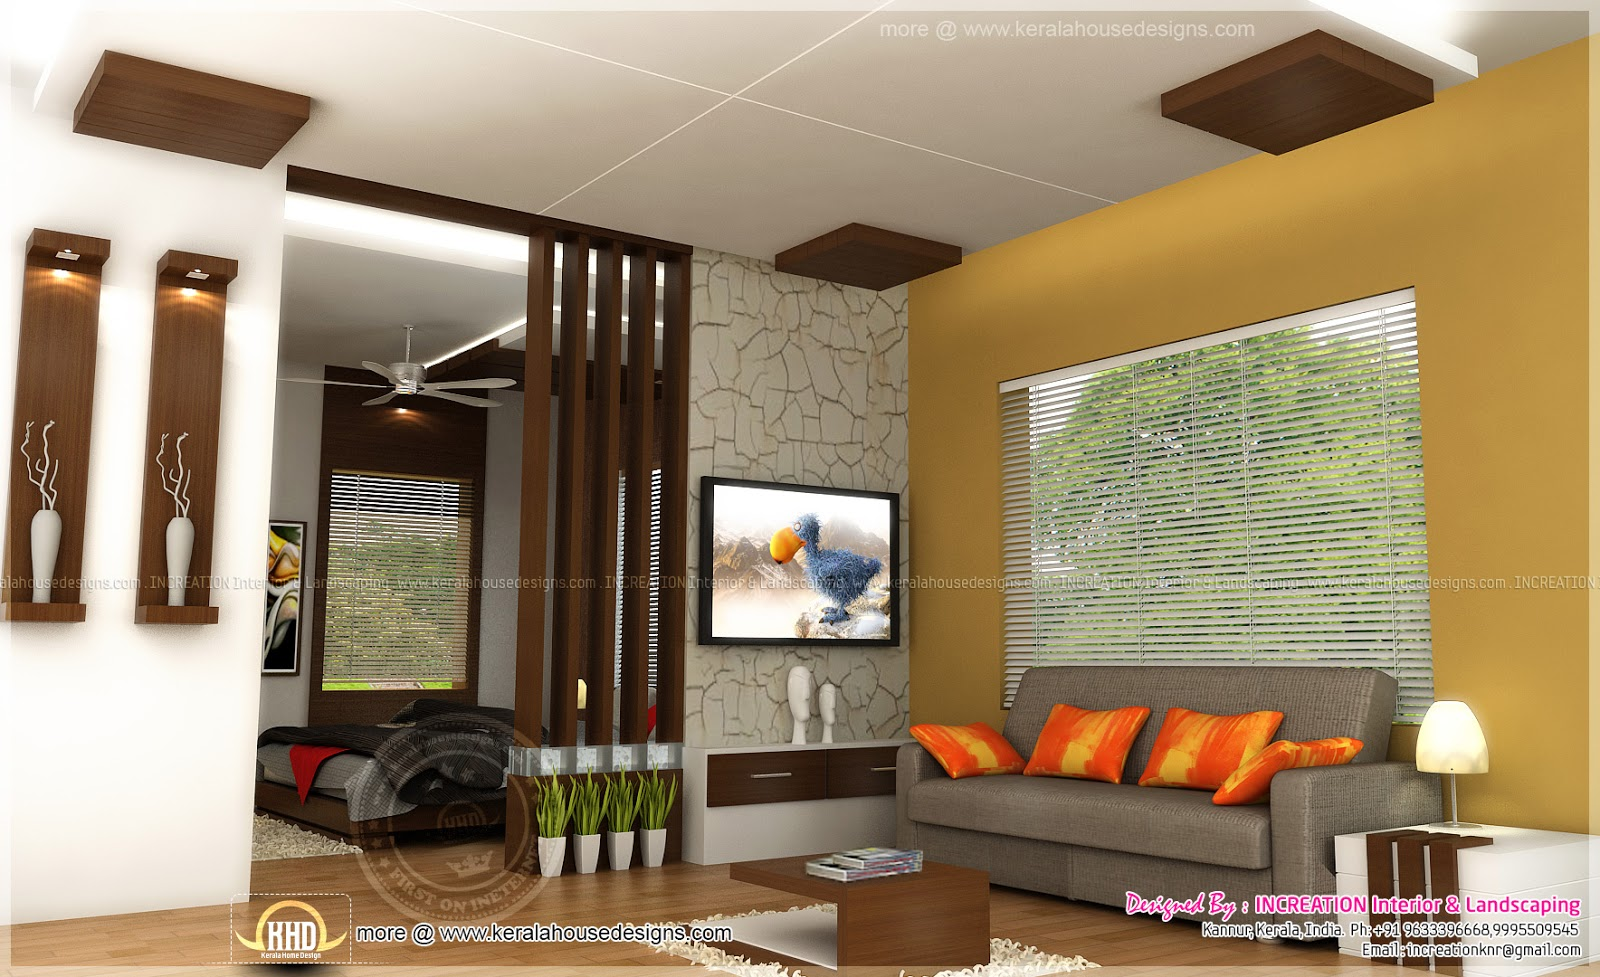 Interior designs from kannur kerala kerala home design for Interior home decoration pictures